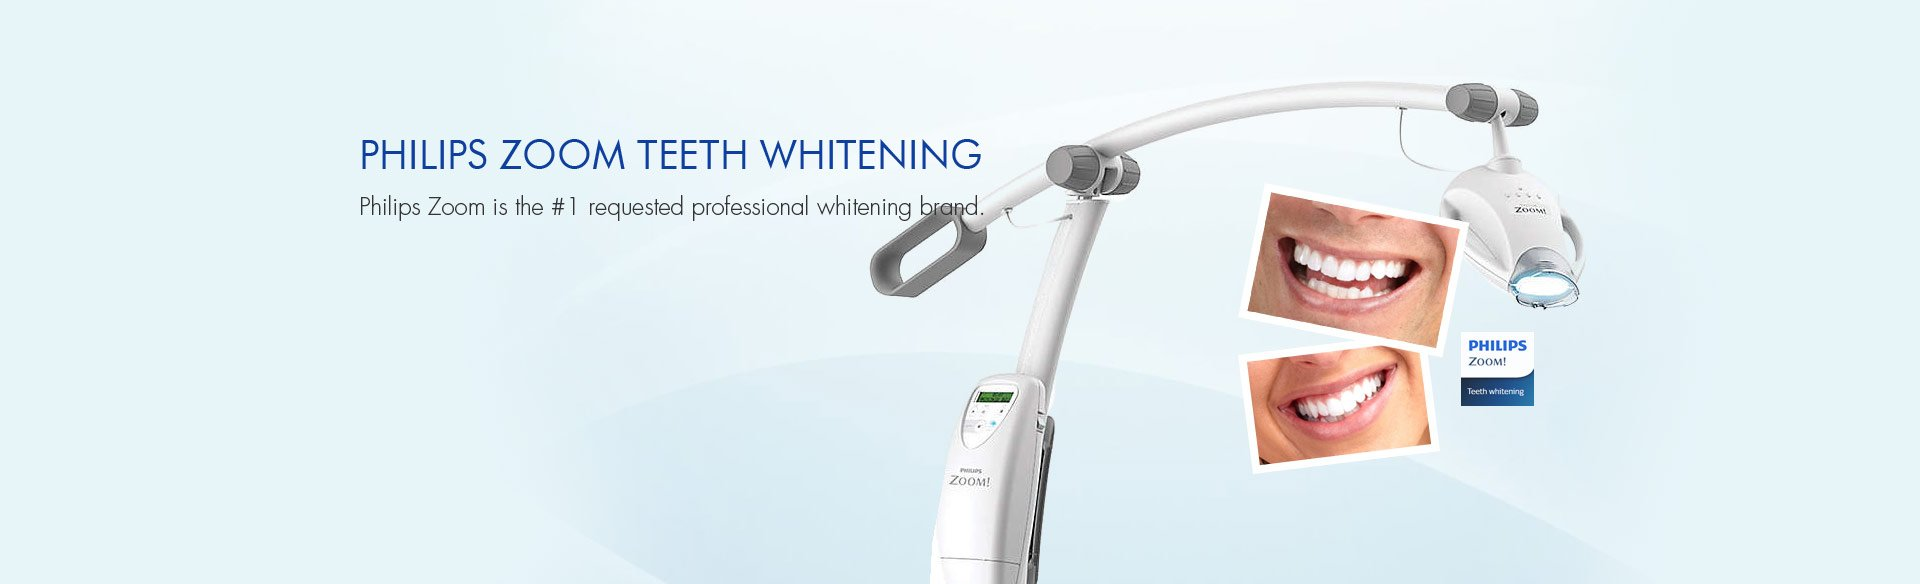 Dr. Carlos Garcia near Glendale CA, Image Of Philips Zoom teeth Whitening